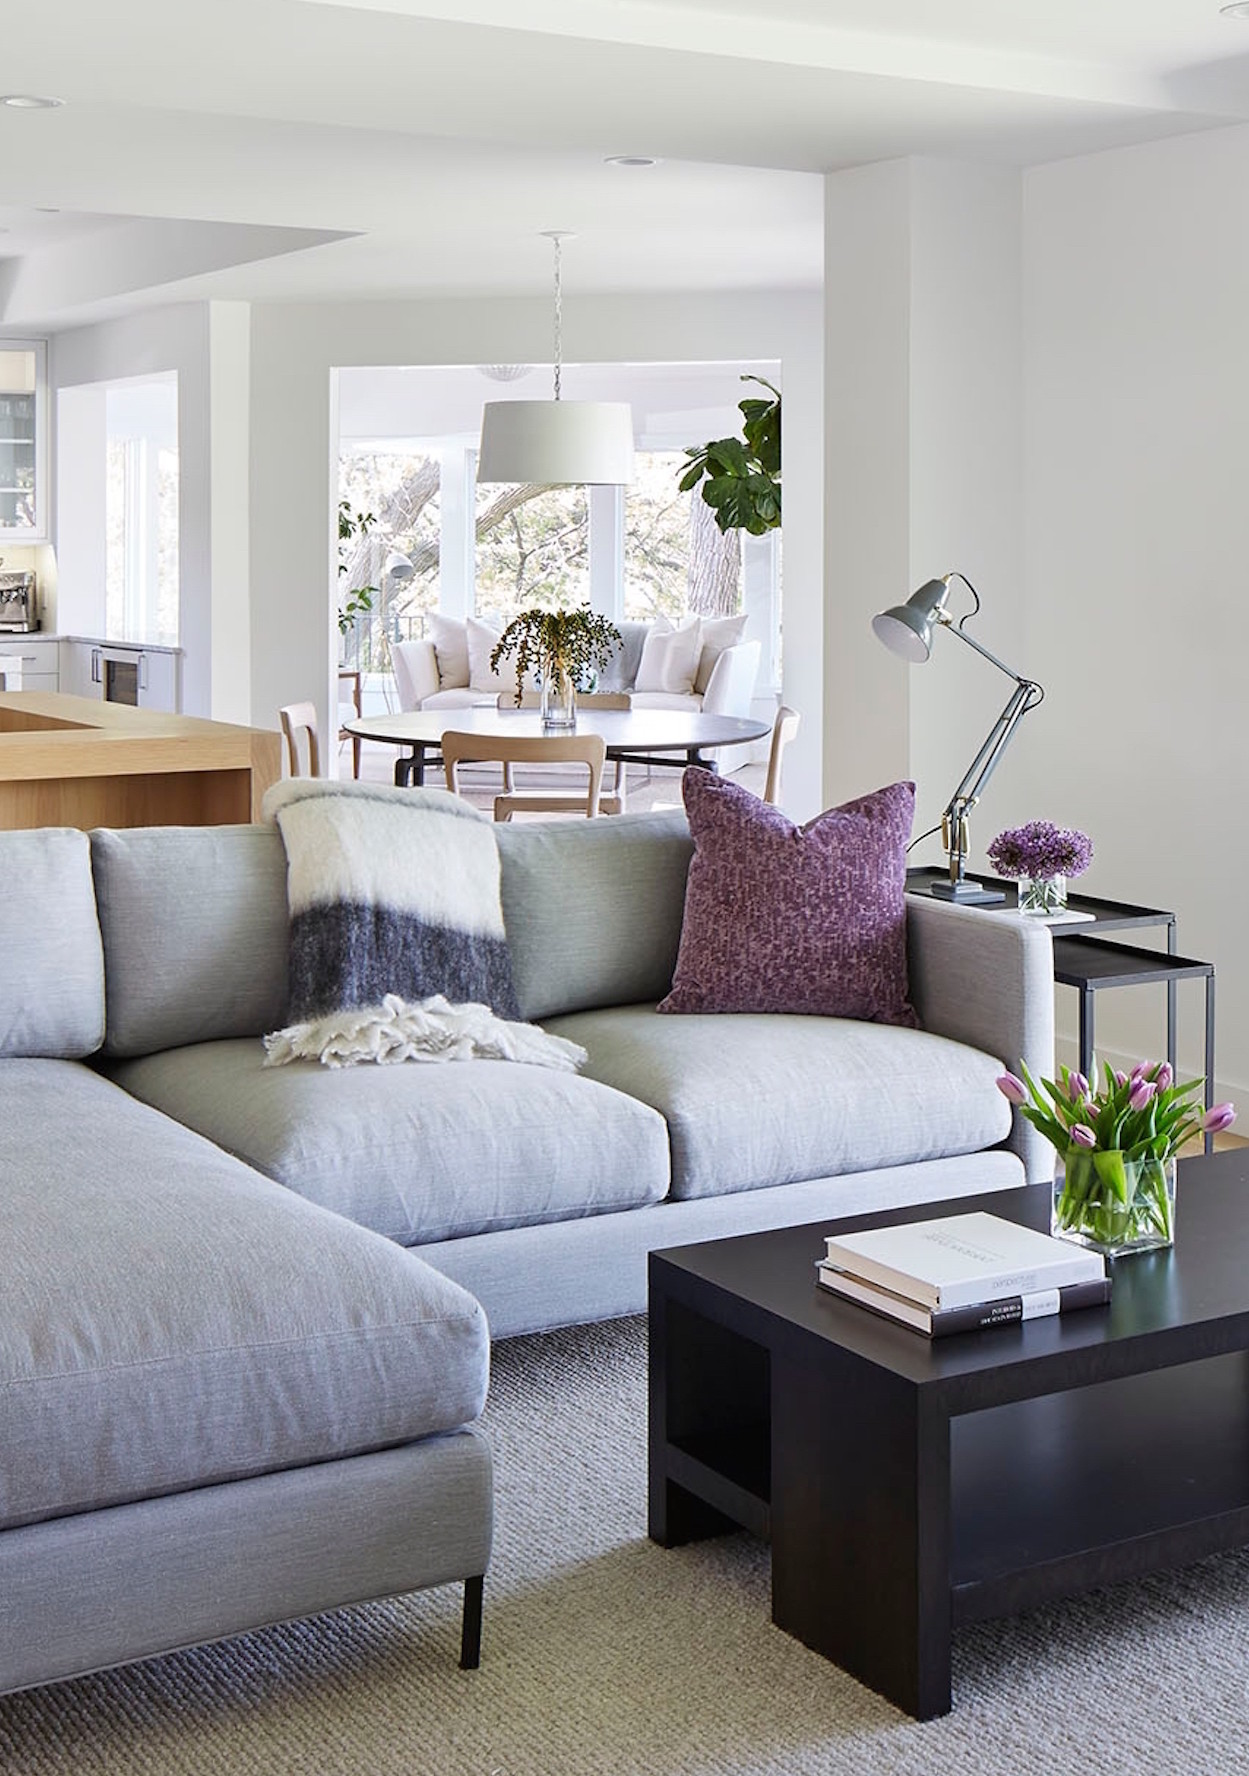 Small Living Rooms Decorating Hgtv: 10 Rules To Keep In Mind When Decorating A Living Room